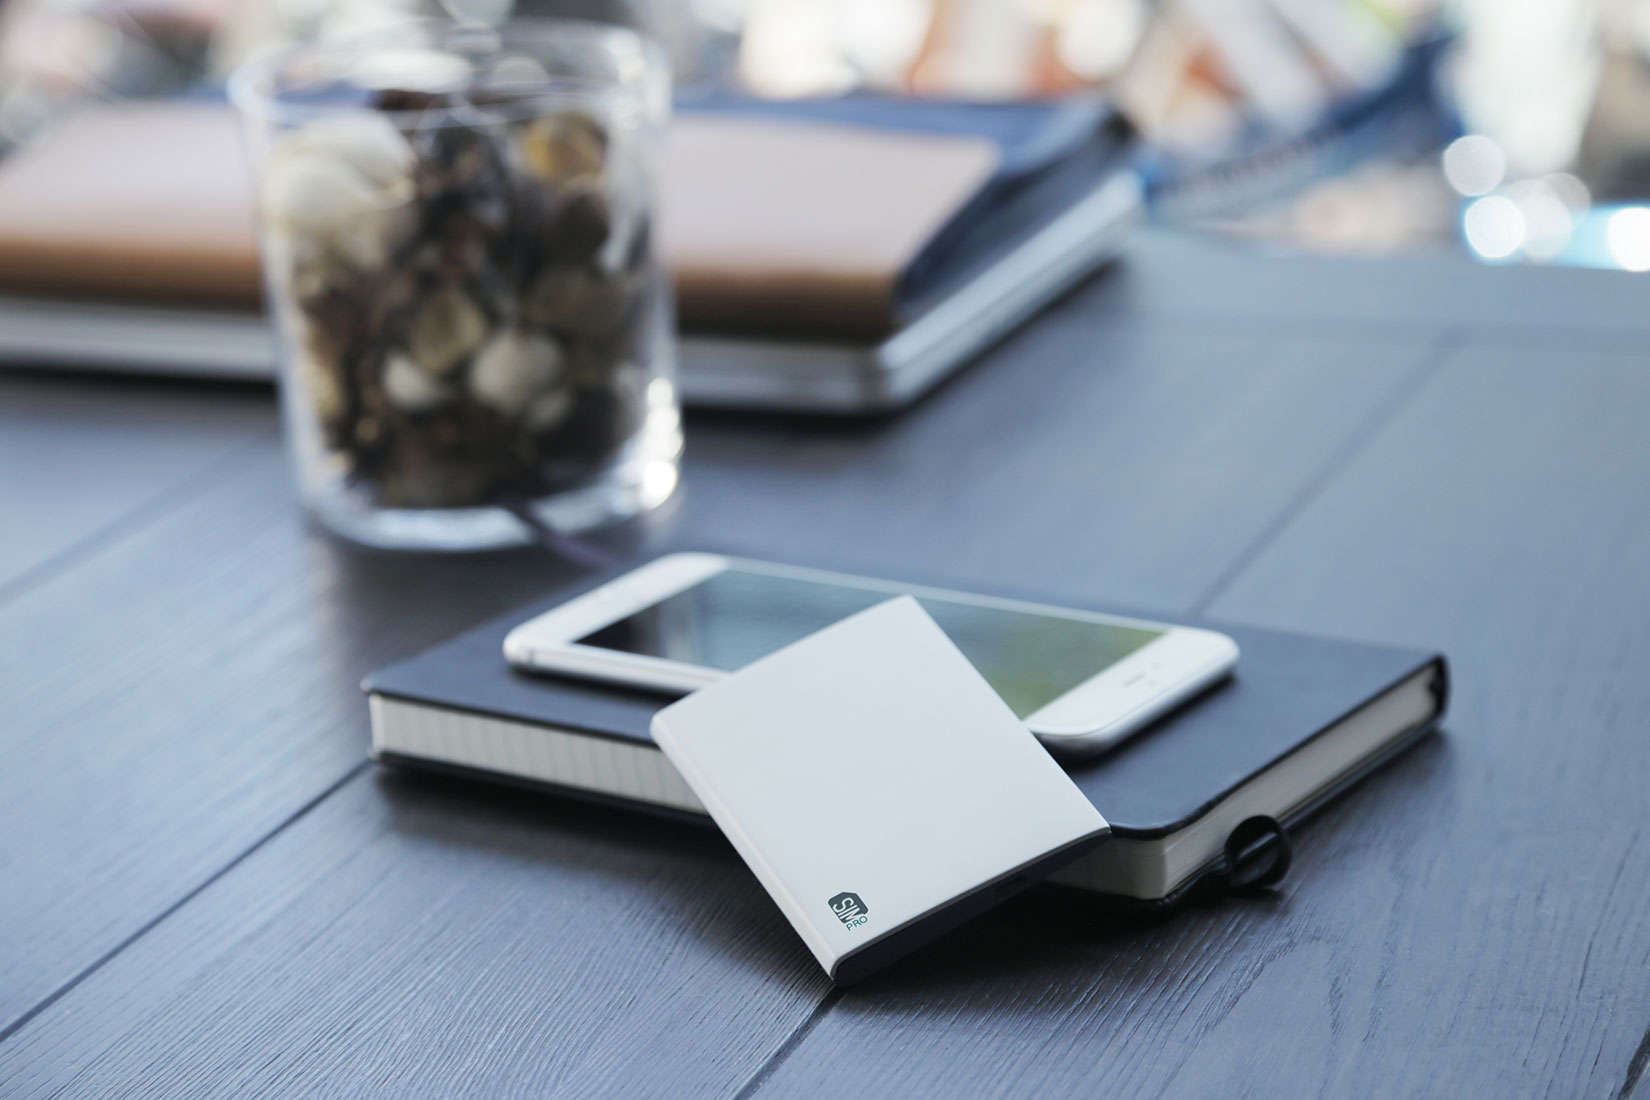 Carry an extra iPhone or carry a SIMpro to manage that extra phone line.